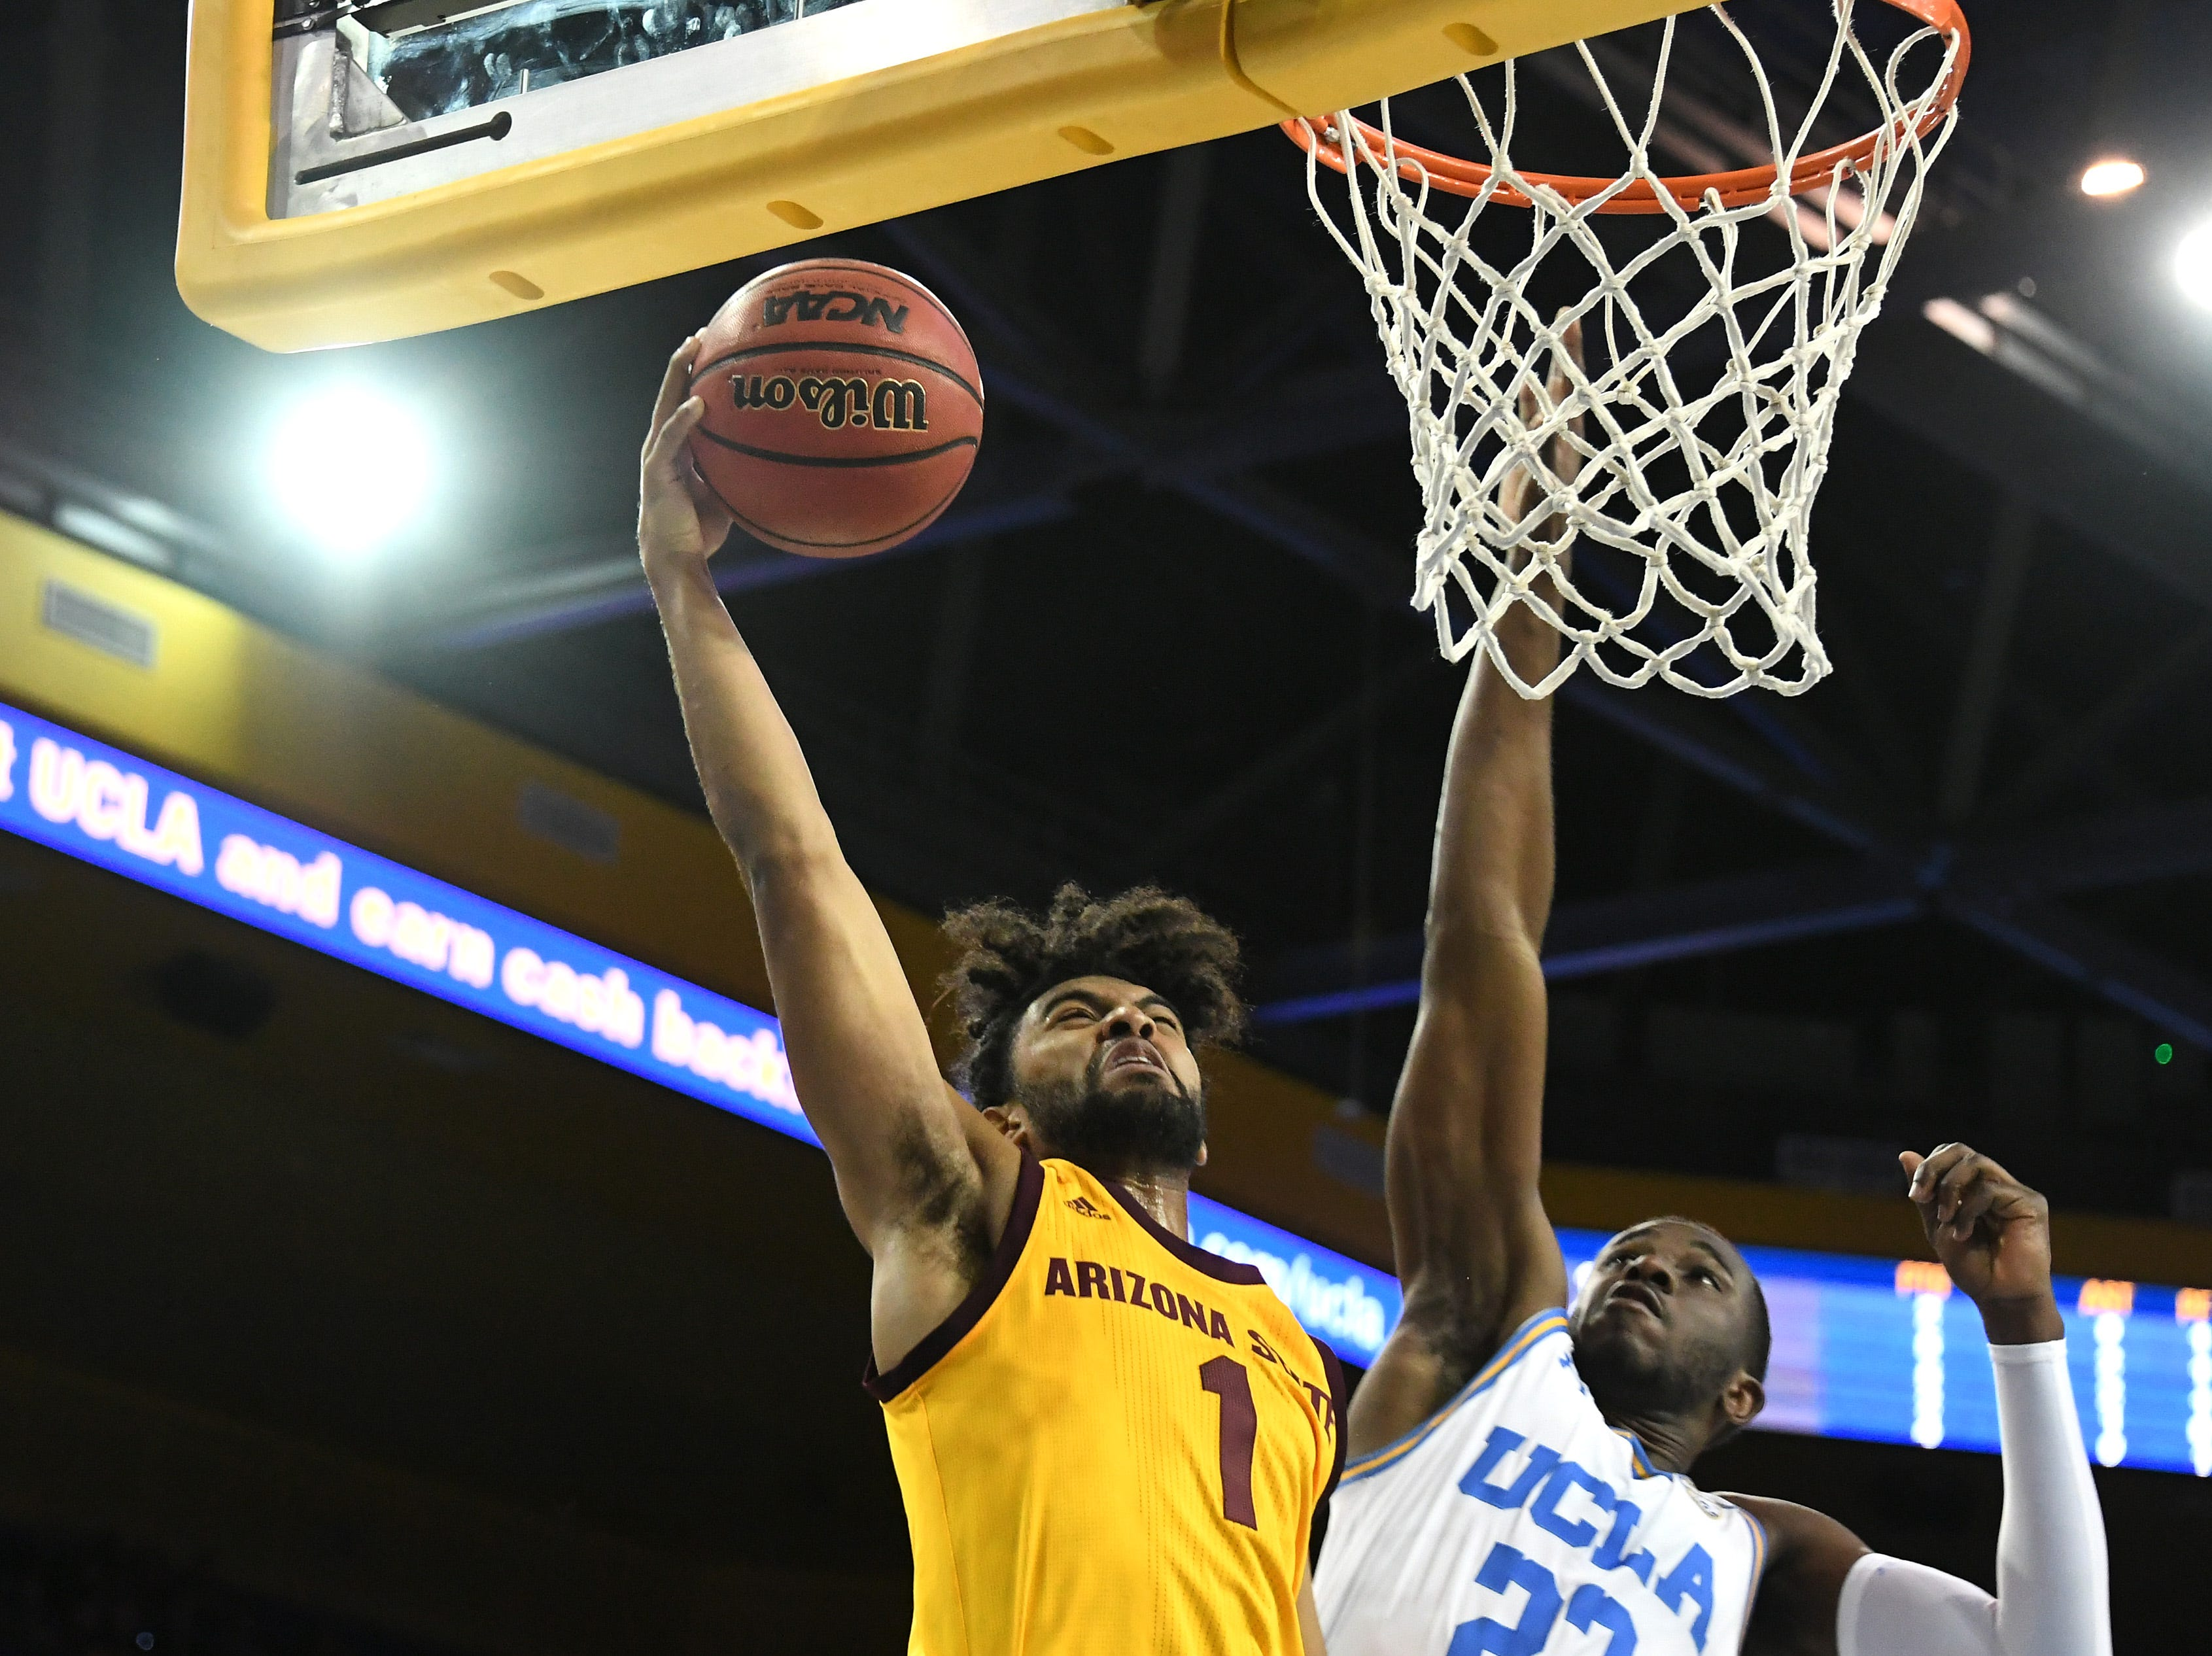 Jan 24, 2019; Los Angeles, CA, USA; Arizona State Sun Devils guard Remy Martin (1) shoots against UCLA Bruins guard Prince Ali (23) during the first half at Pauley Pavilion. Mandatory Credit: Richard Mackson-USA TODAY Sports